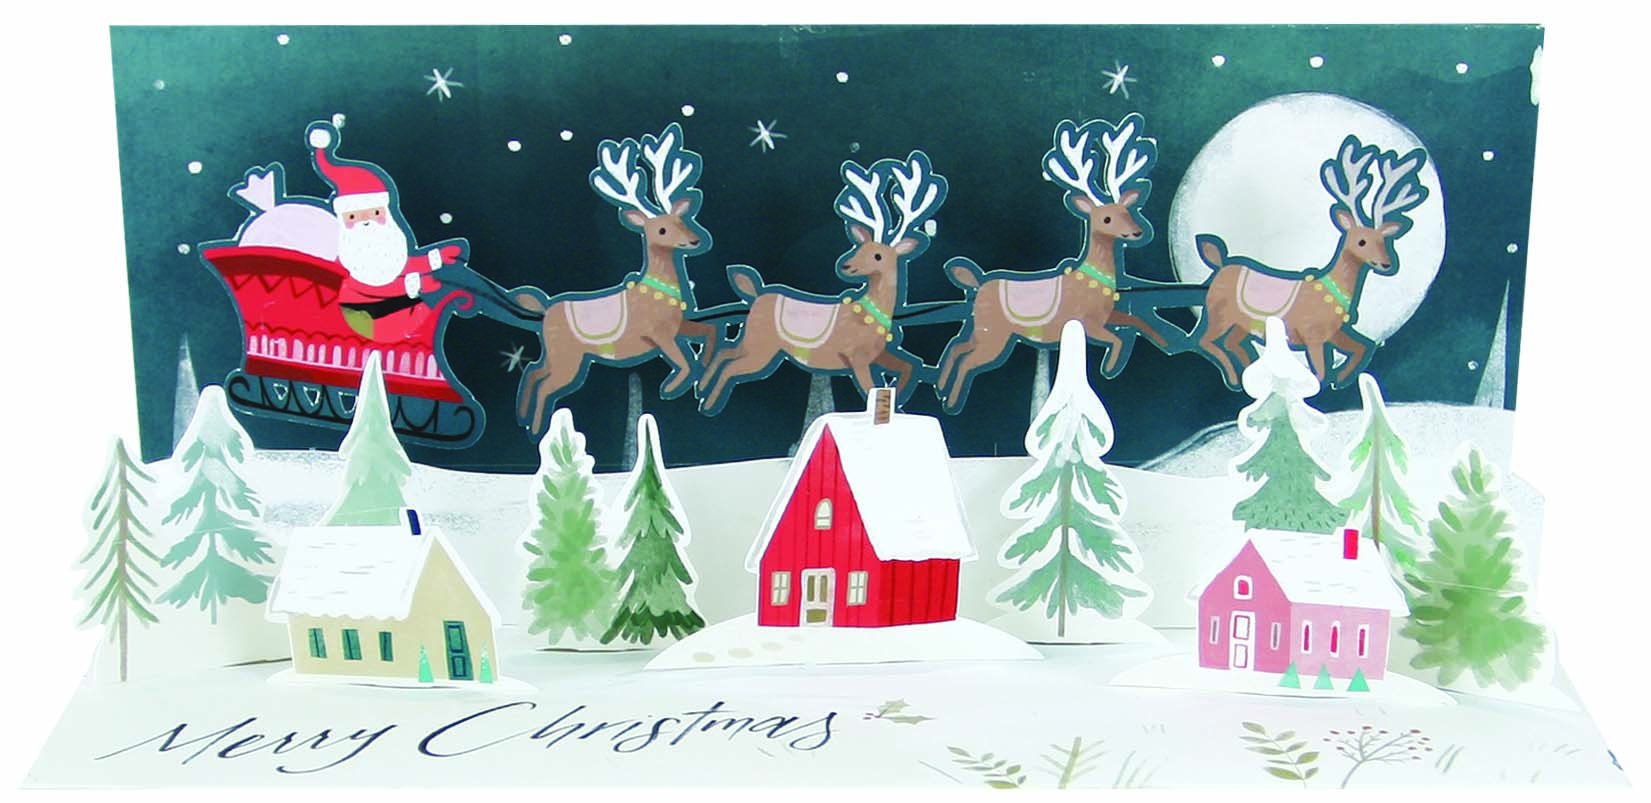 Above: Noel Tatt's Christmas cards sold well for the Bentley and Maddison shops.